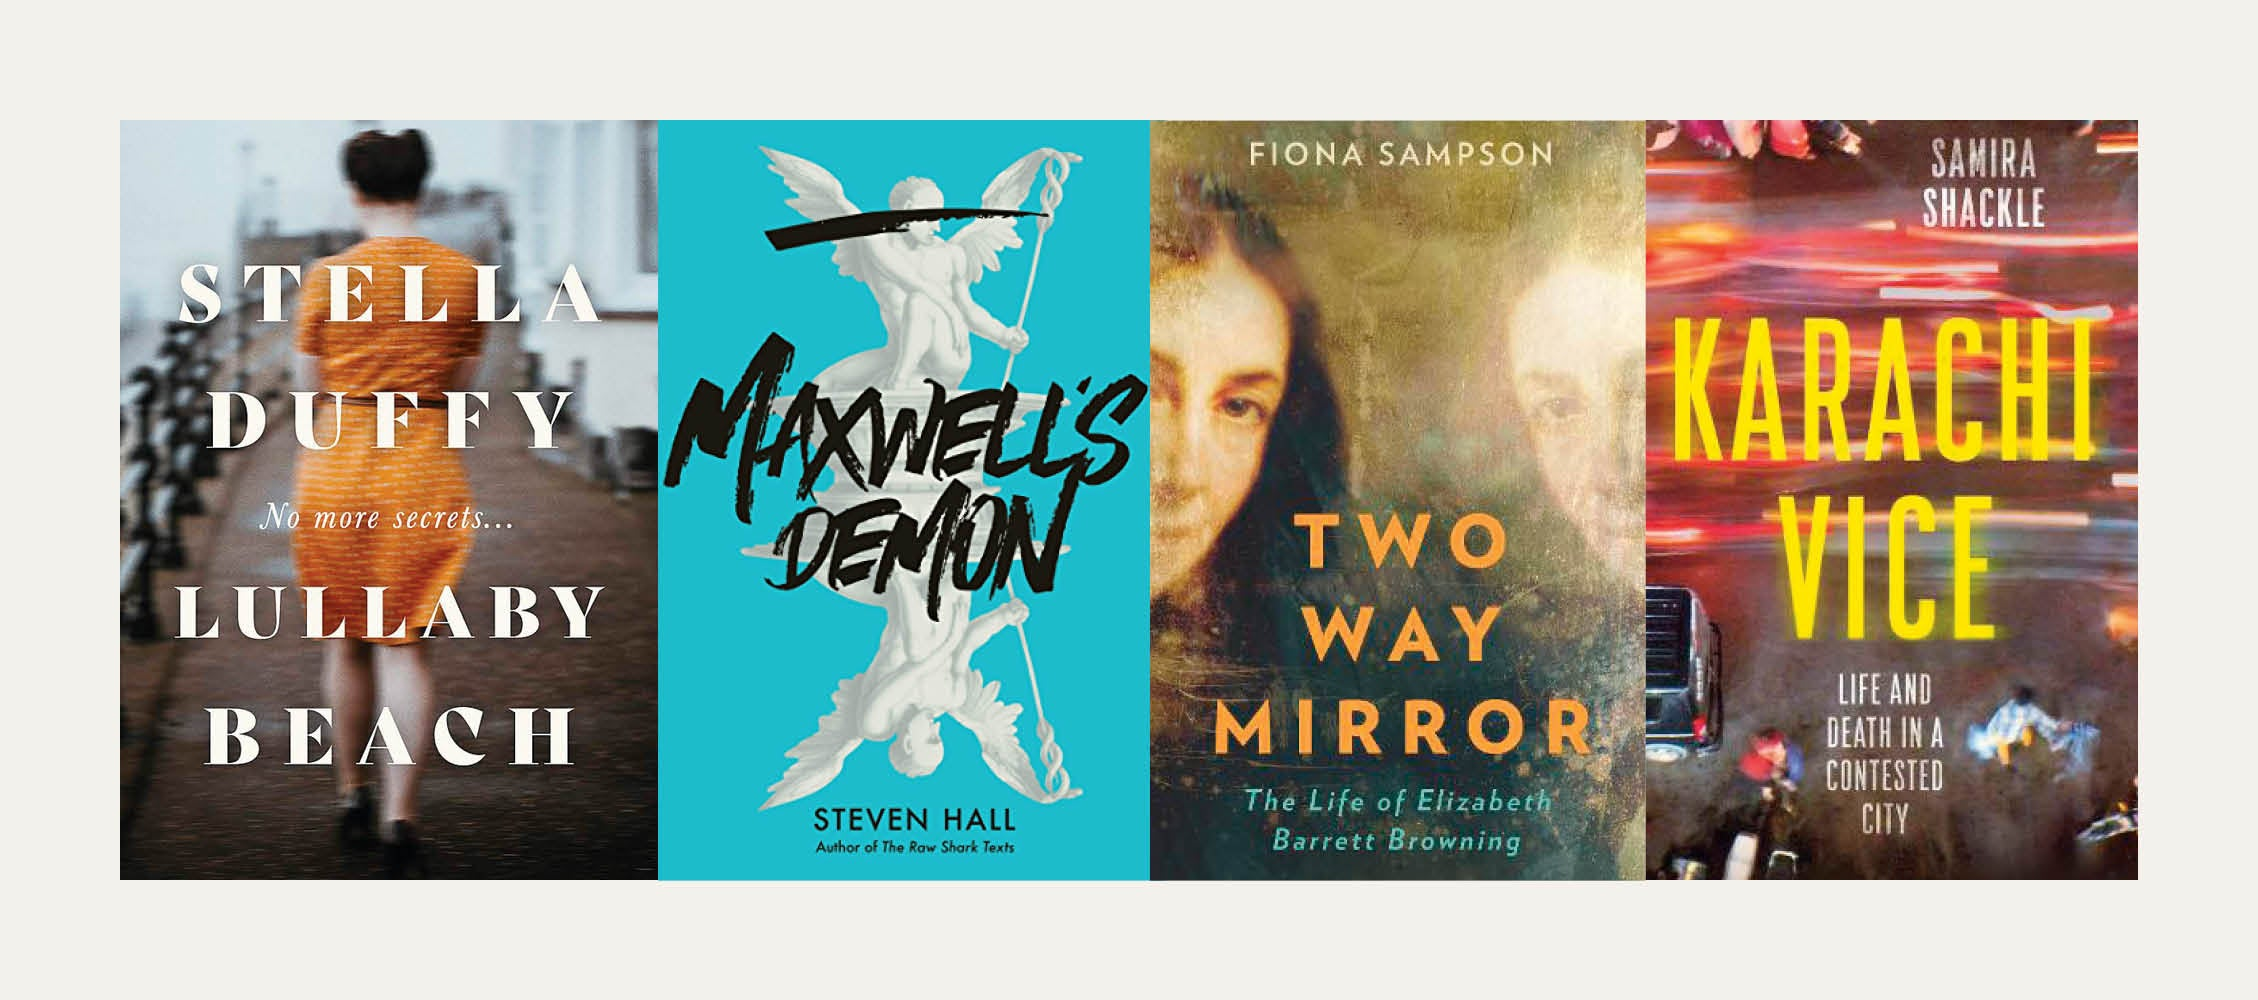 NS Recommends: New books from Fiona Sampson, Samira Shackle, Stella Duffy and Steven Hall